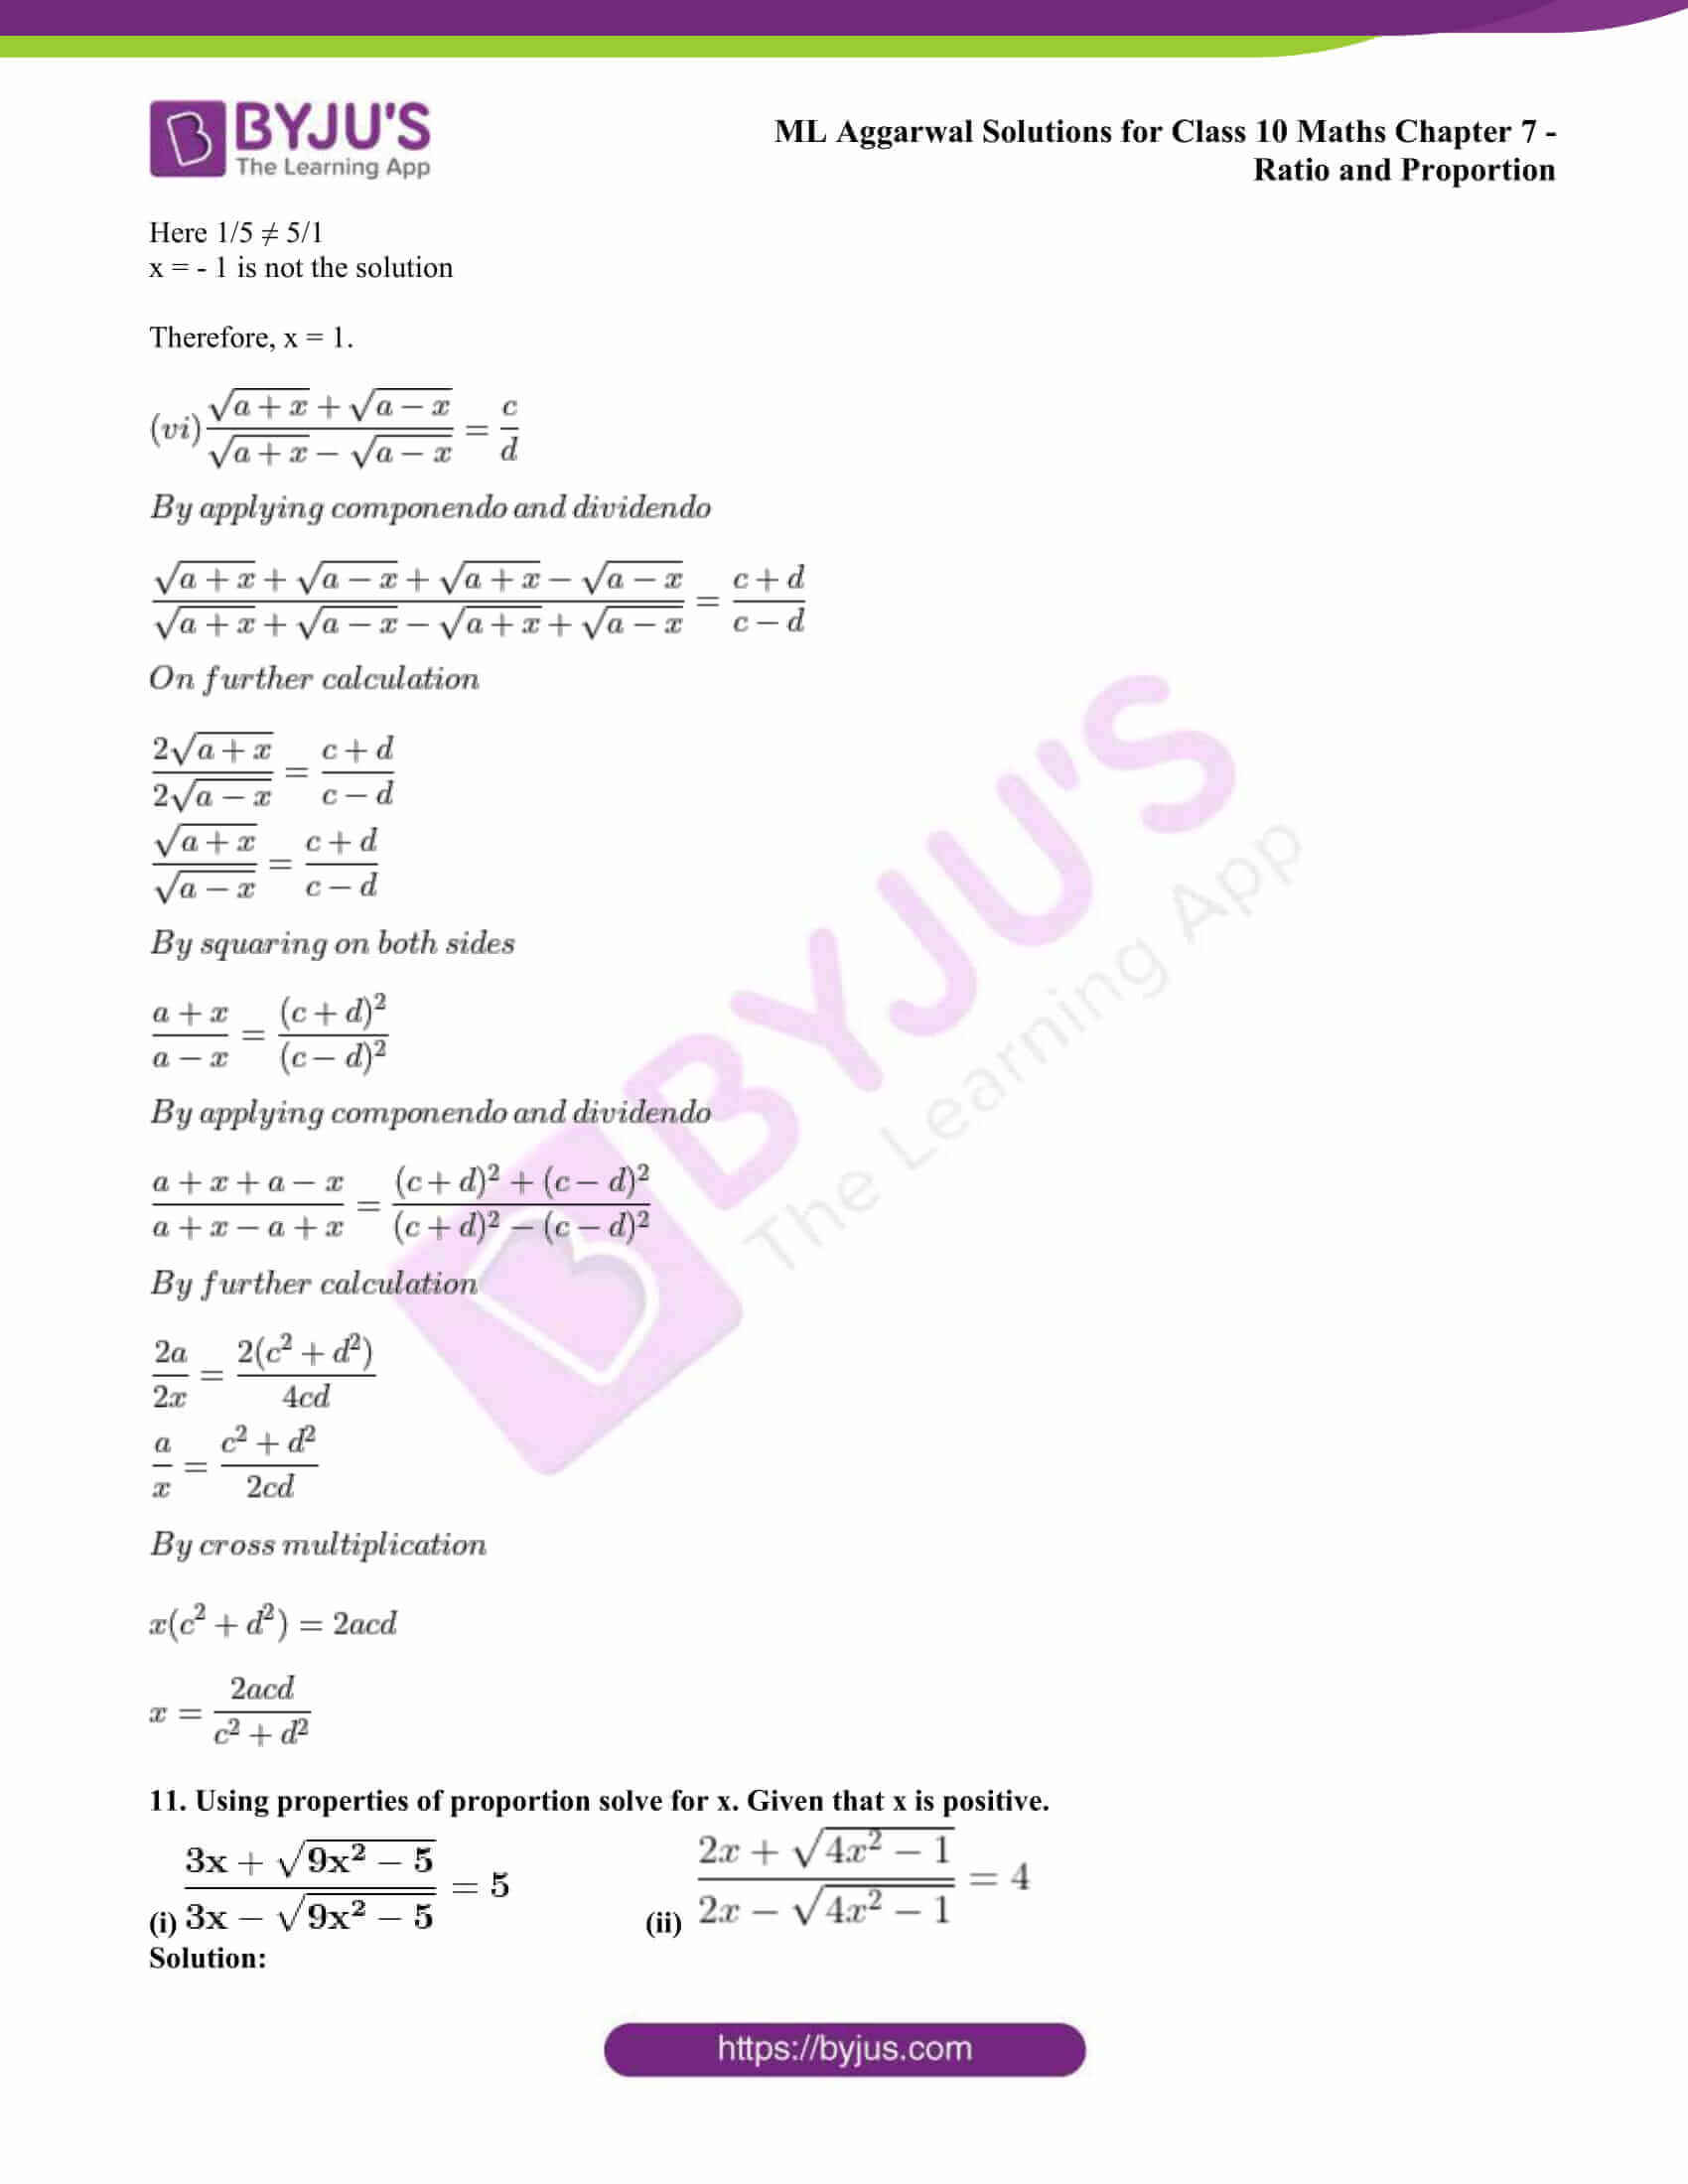 ml aggarwal solutions class 10 maths chapter 7 59